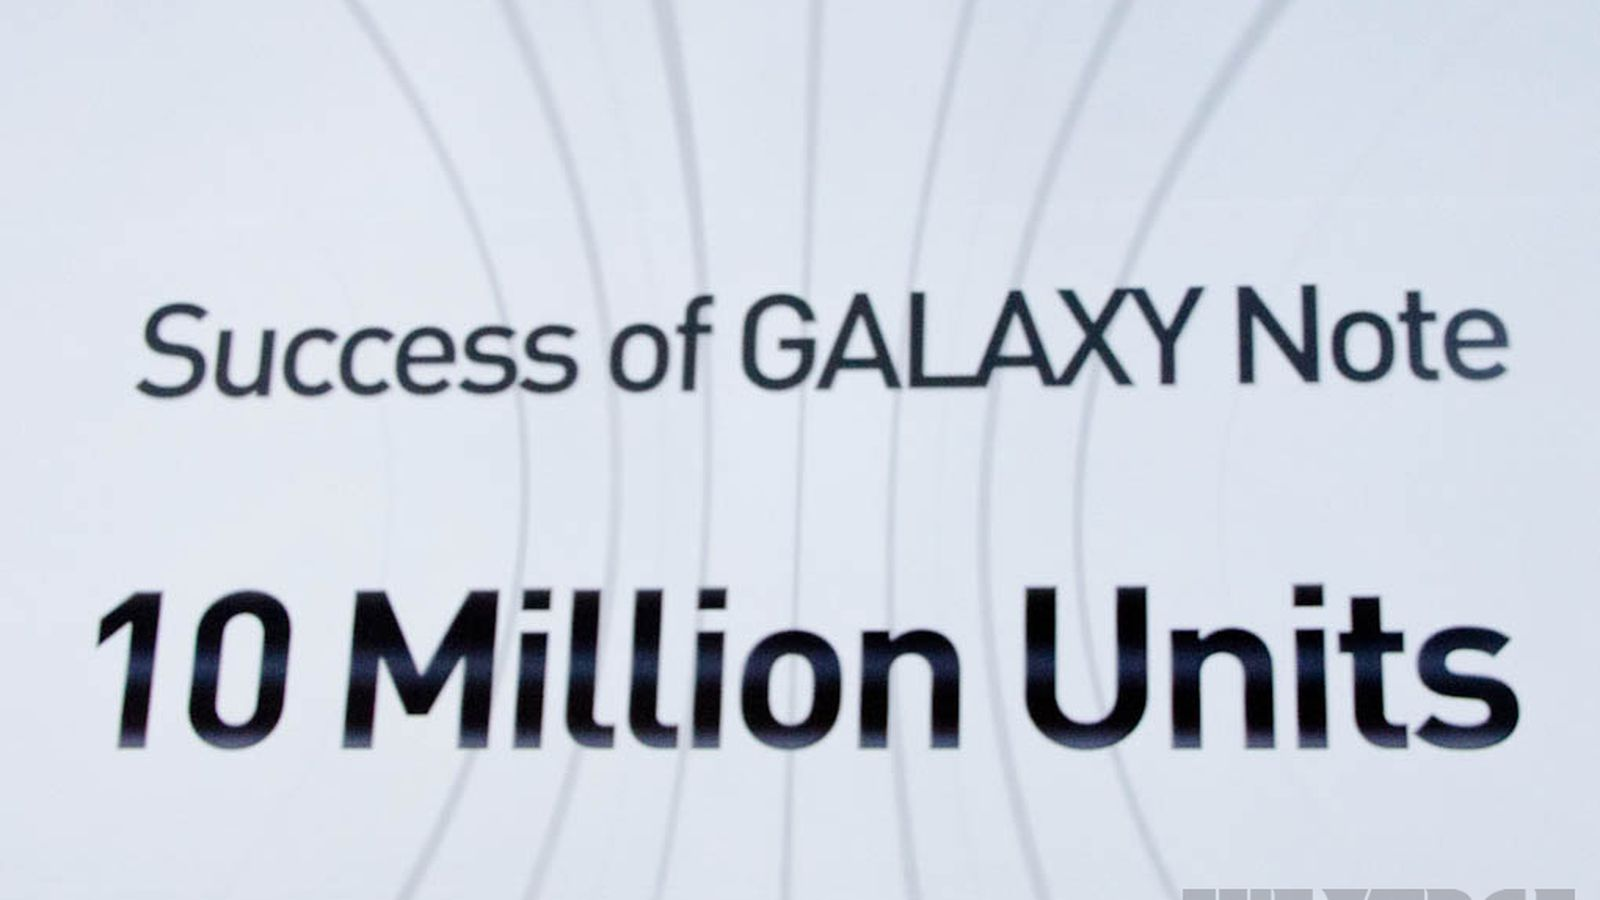 Samsung Galaxy Note Sales Hit 10 Million Worldwide The Verge